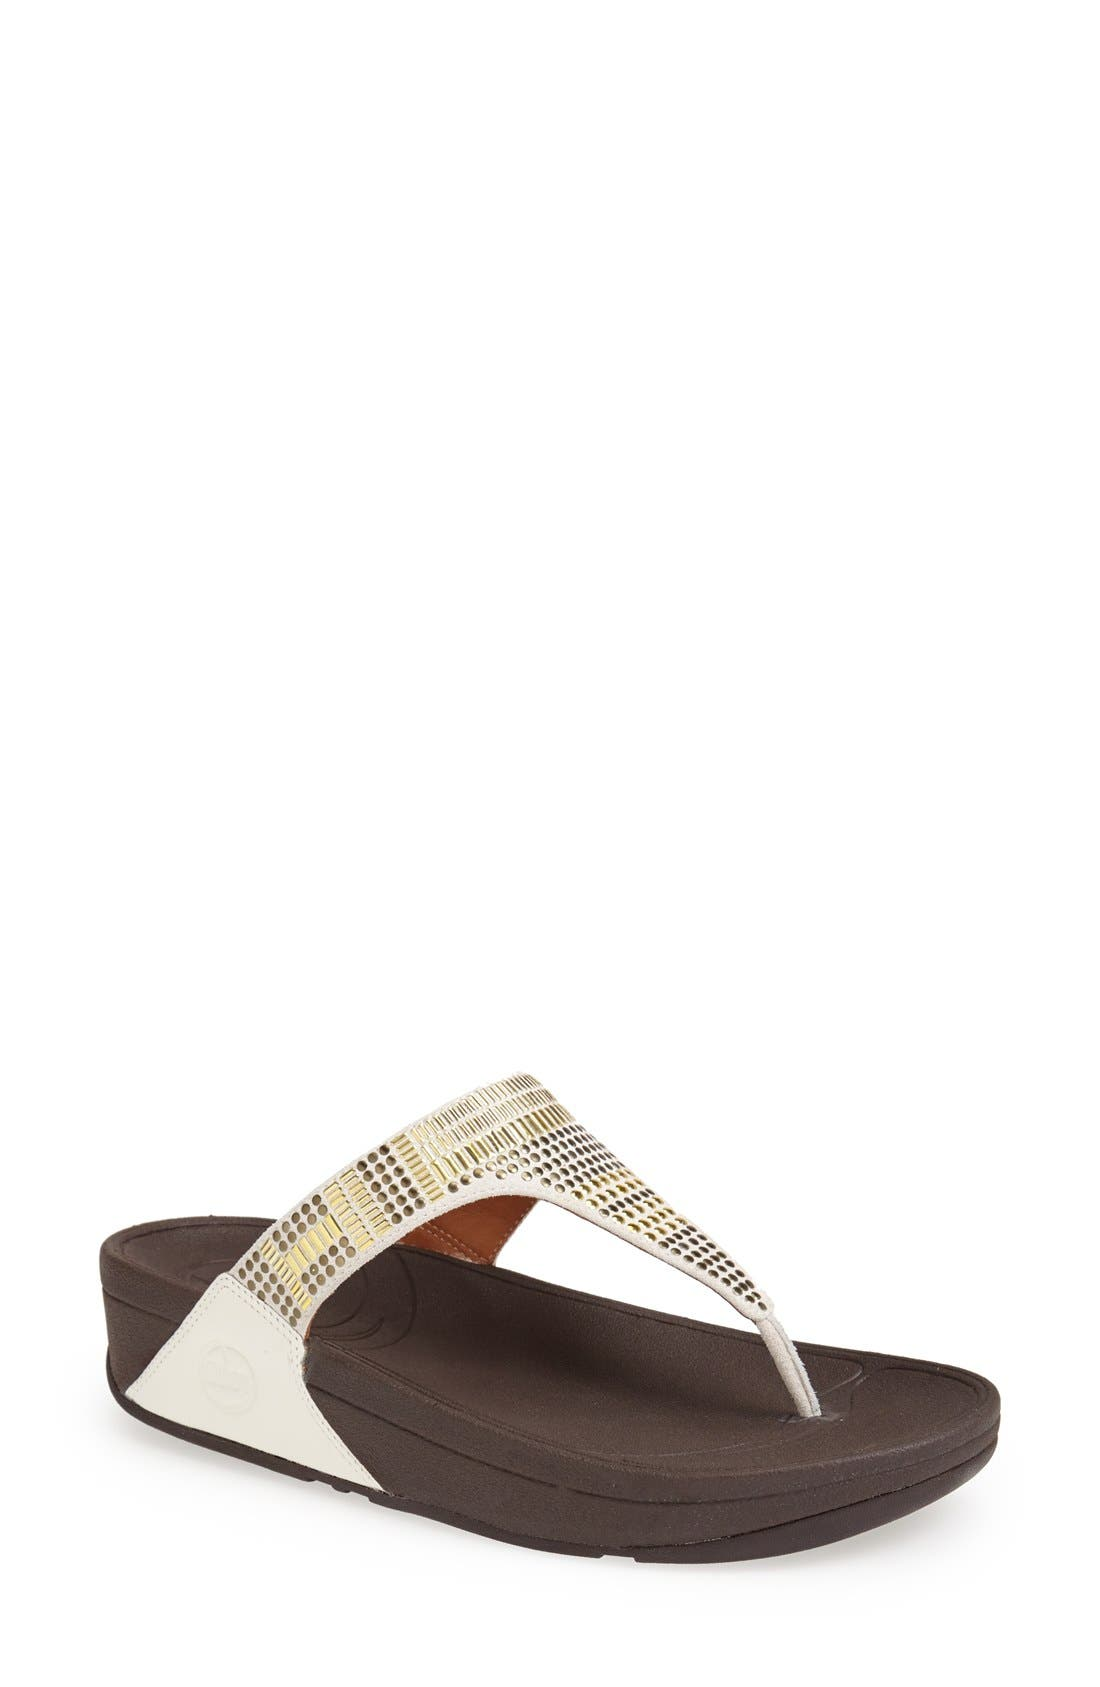 Alternate Image 1 Selected - FitFlop 'Aztek Chada' Sandal